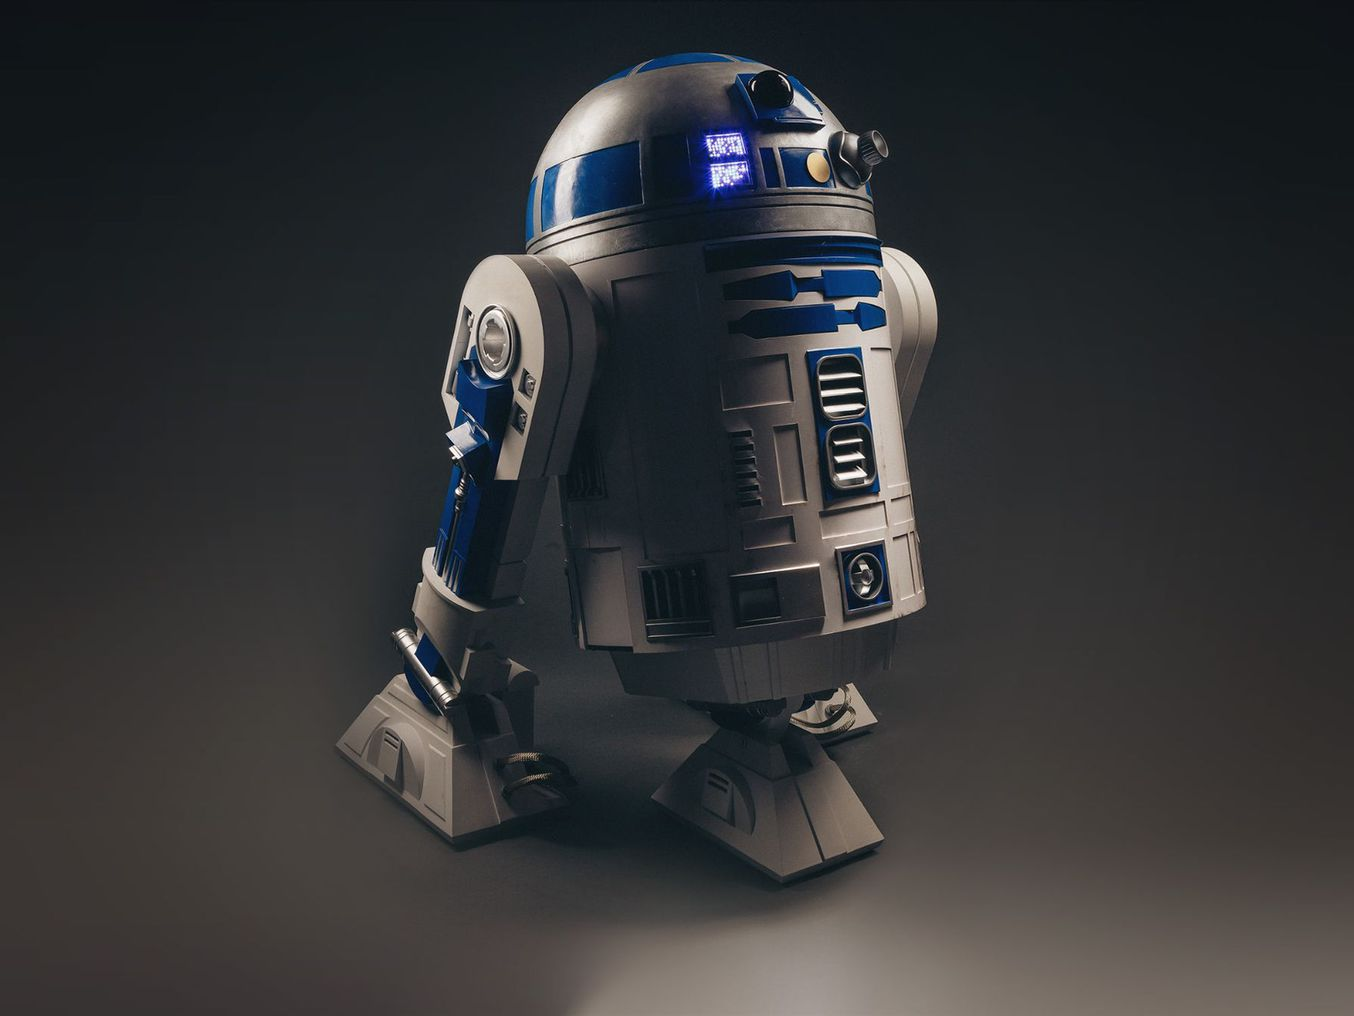 Full size, 3D printed, R2D2 using interlocking parts